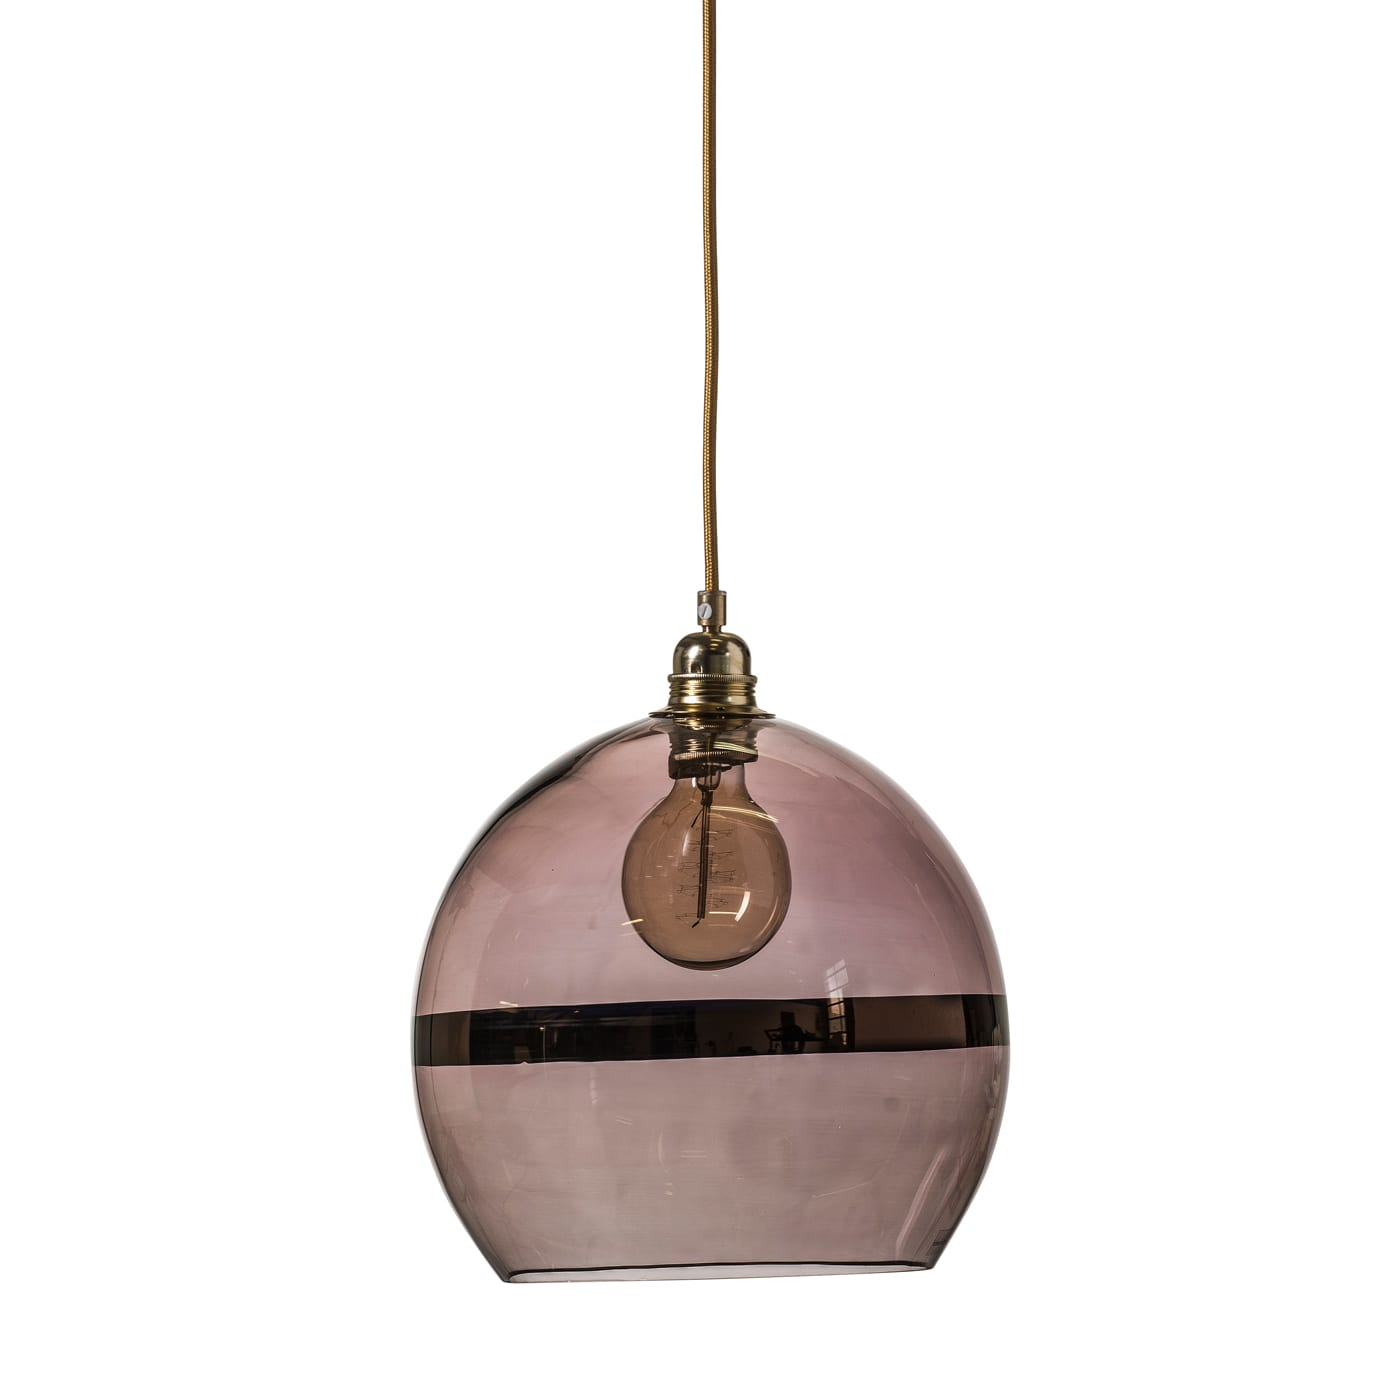 Rowan pendant lamp, copper stripe on obsidian, 28cm